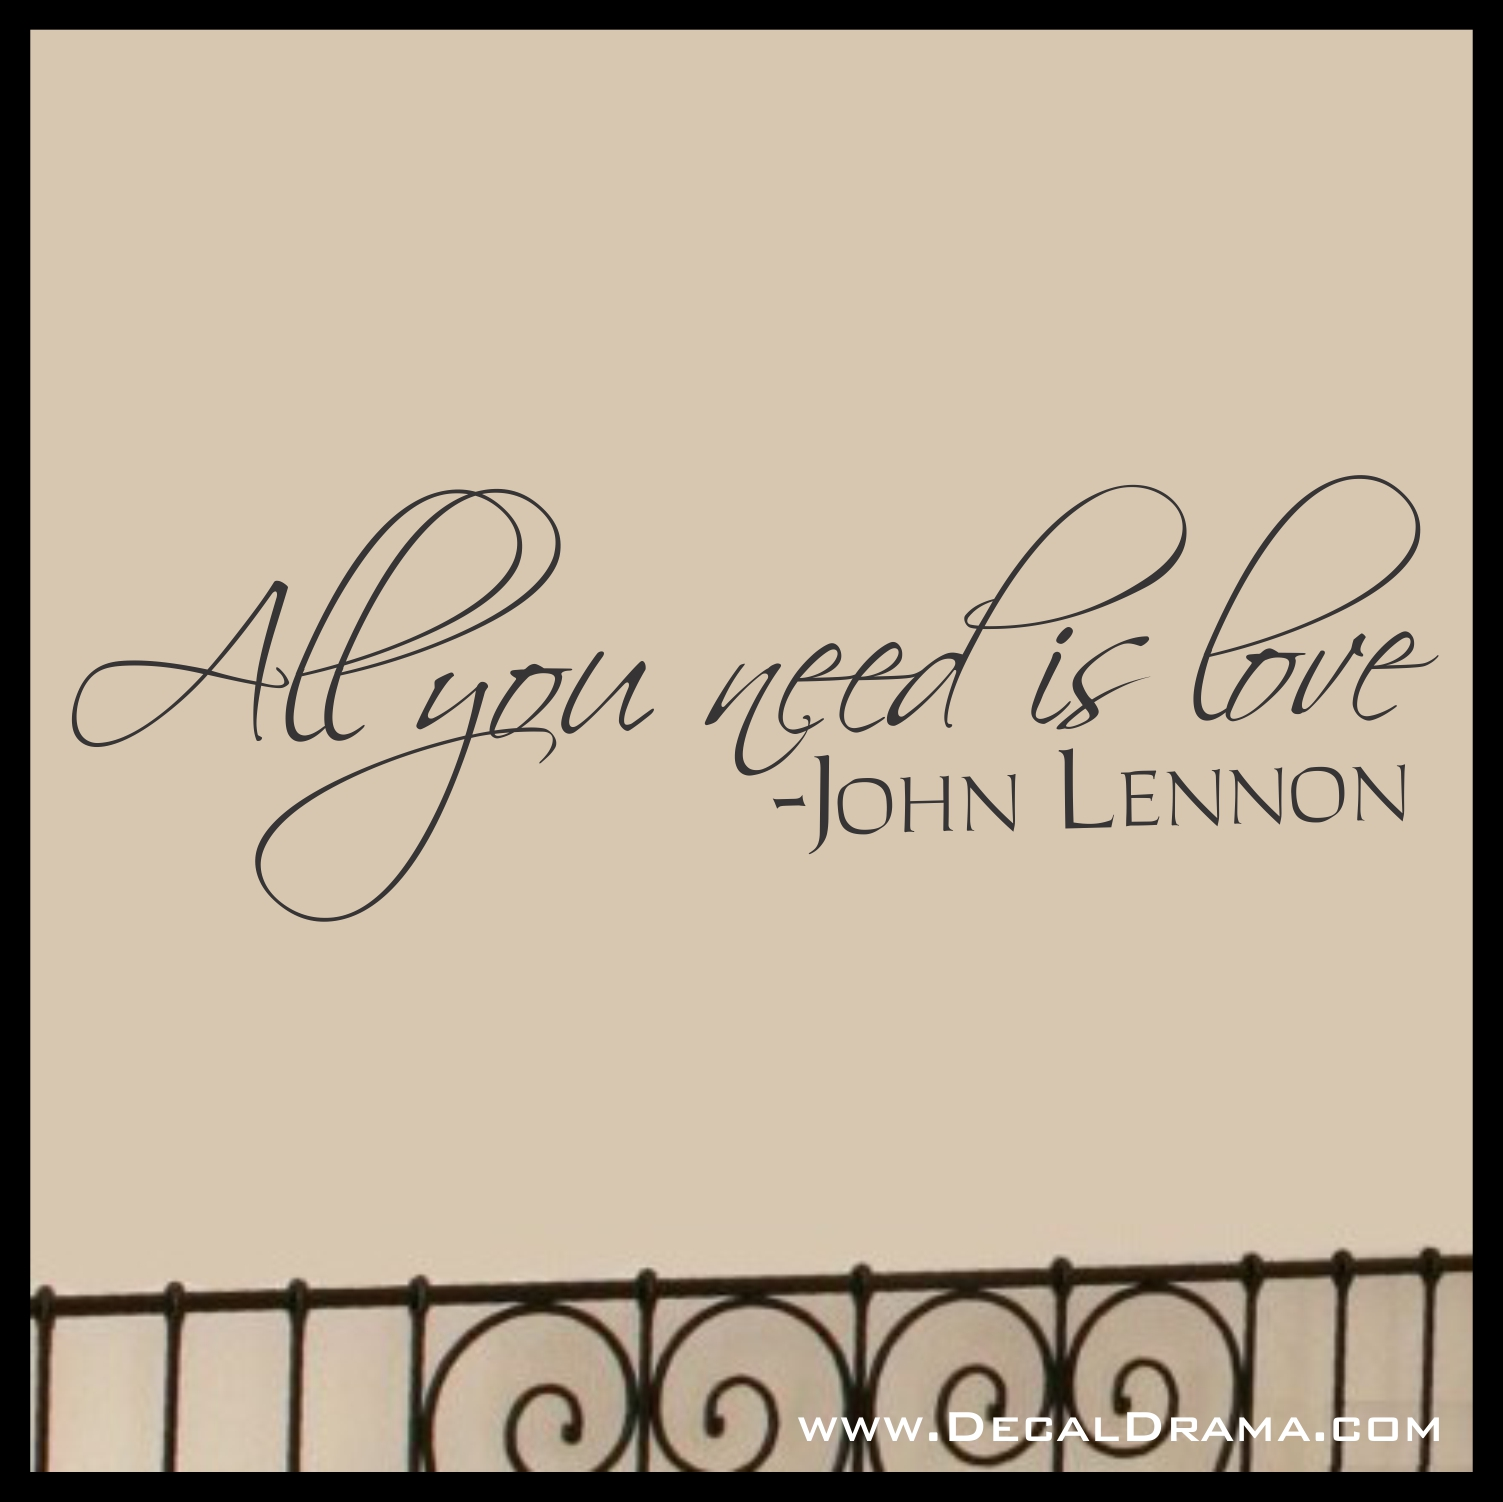 Decal Drama All You Need Is Love John Lennon The Beatles Lyrics Vinyl Wall Decal Vinyl Decals For Every Day